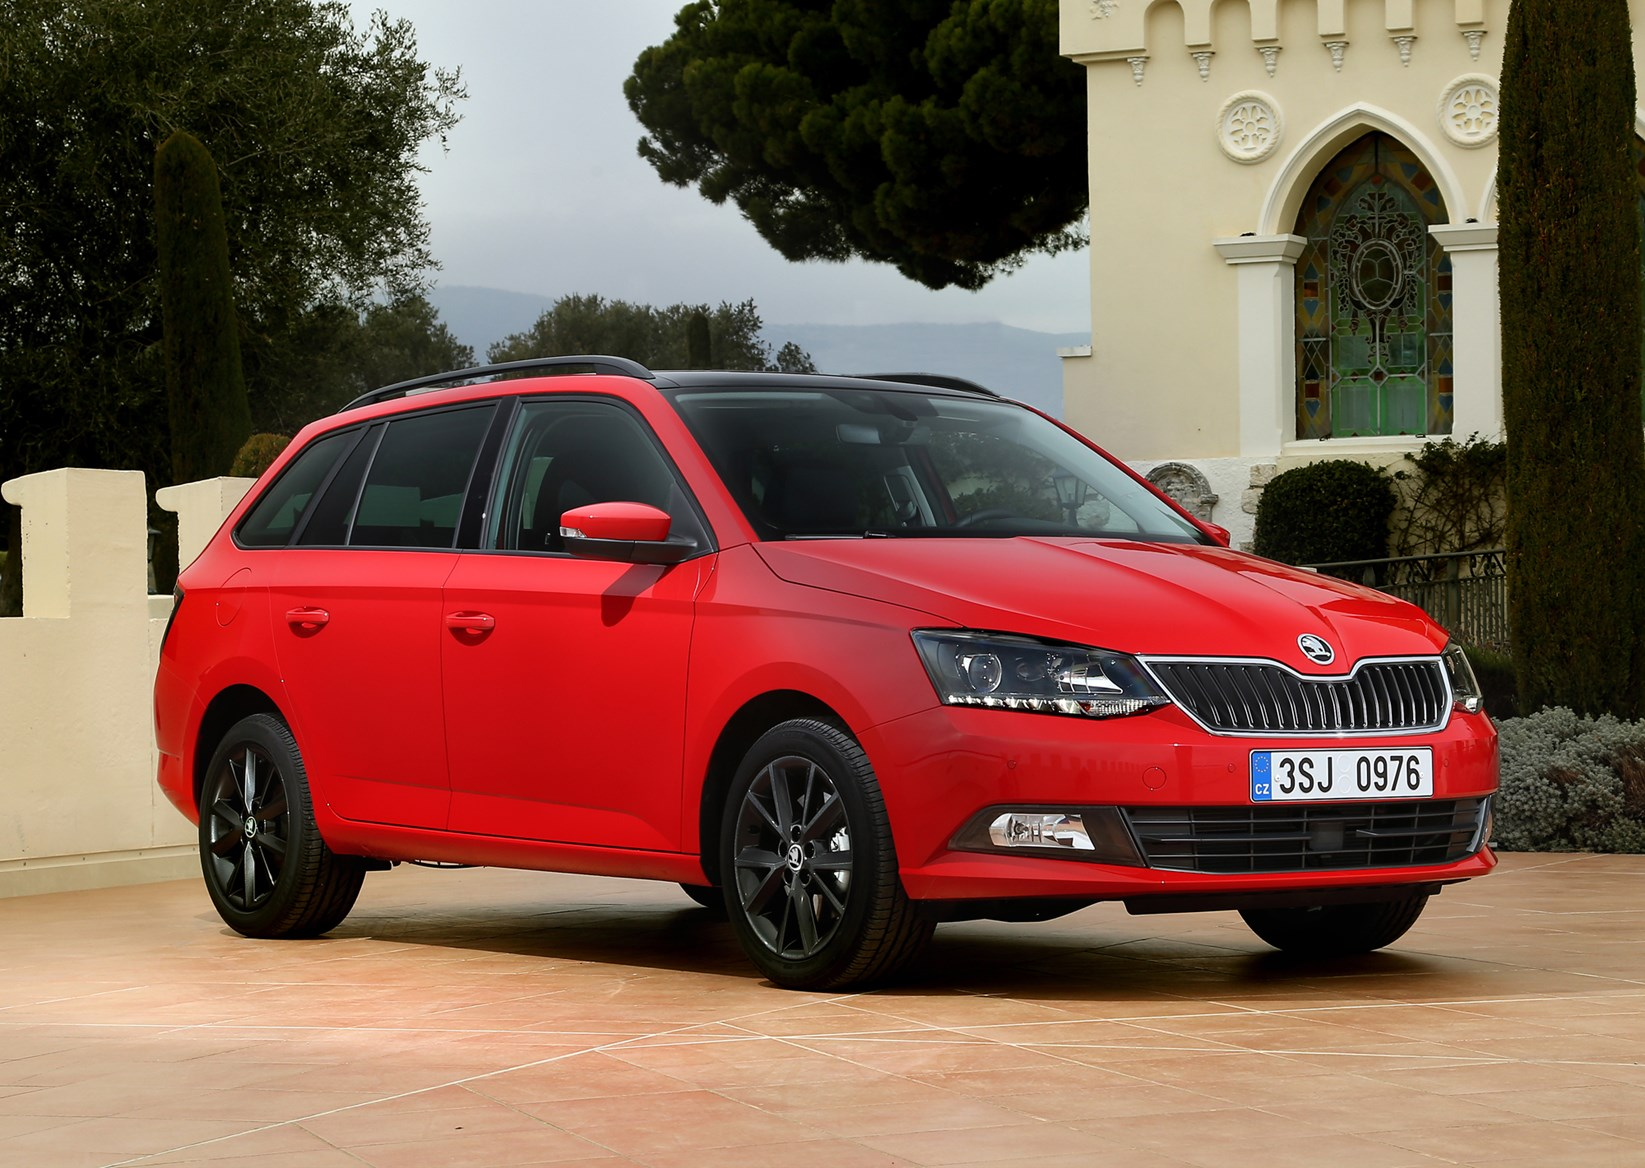 Skoda Fabia Estate (2015 - ) Photos | Parkers